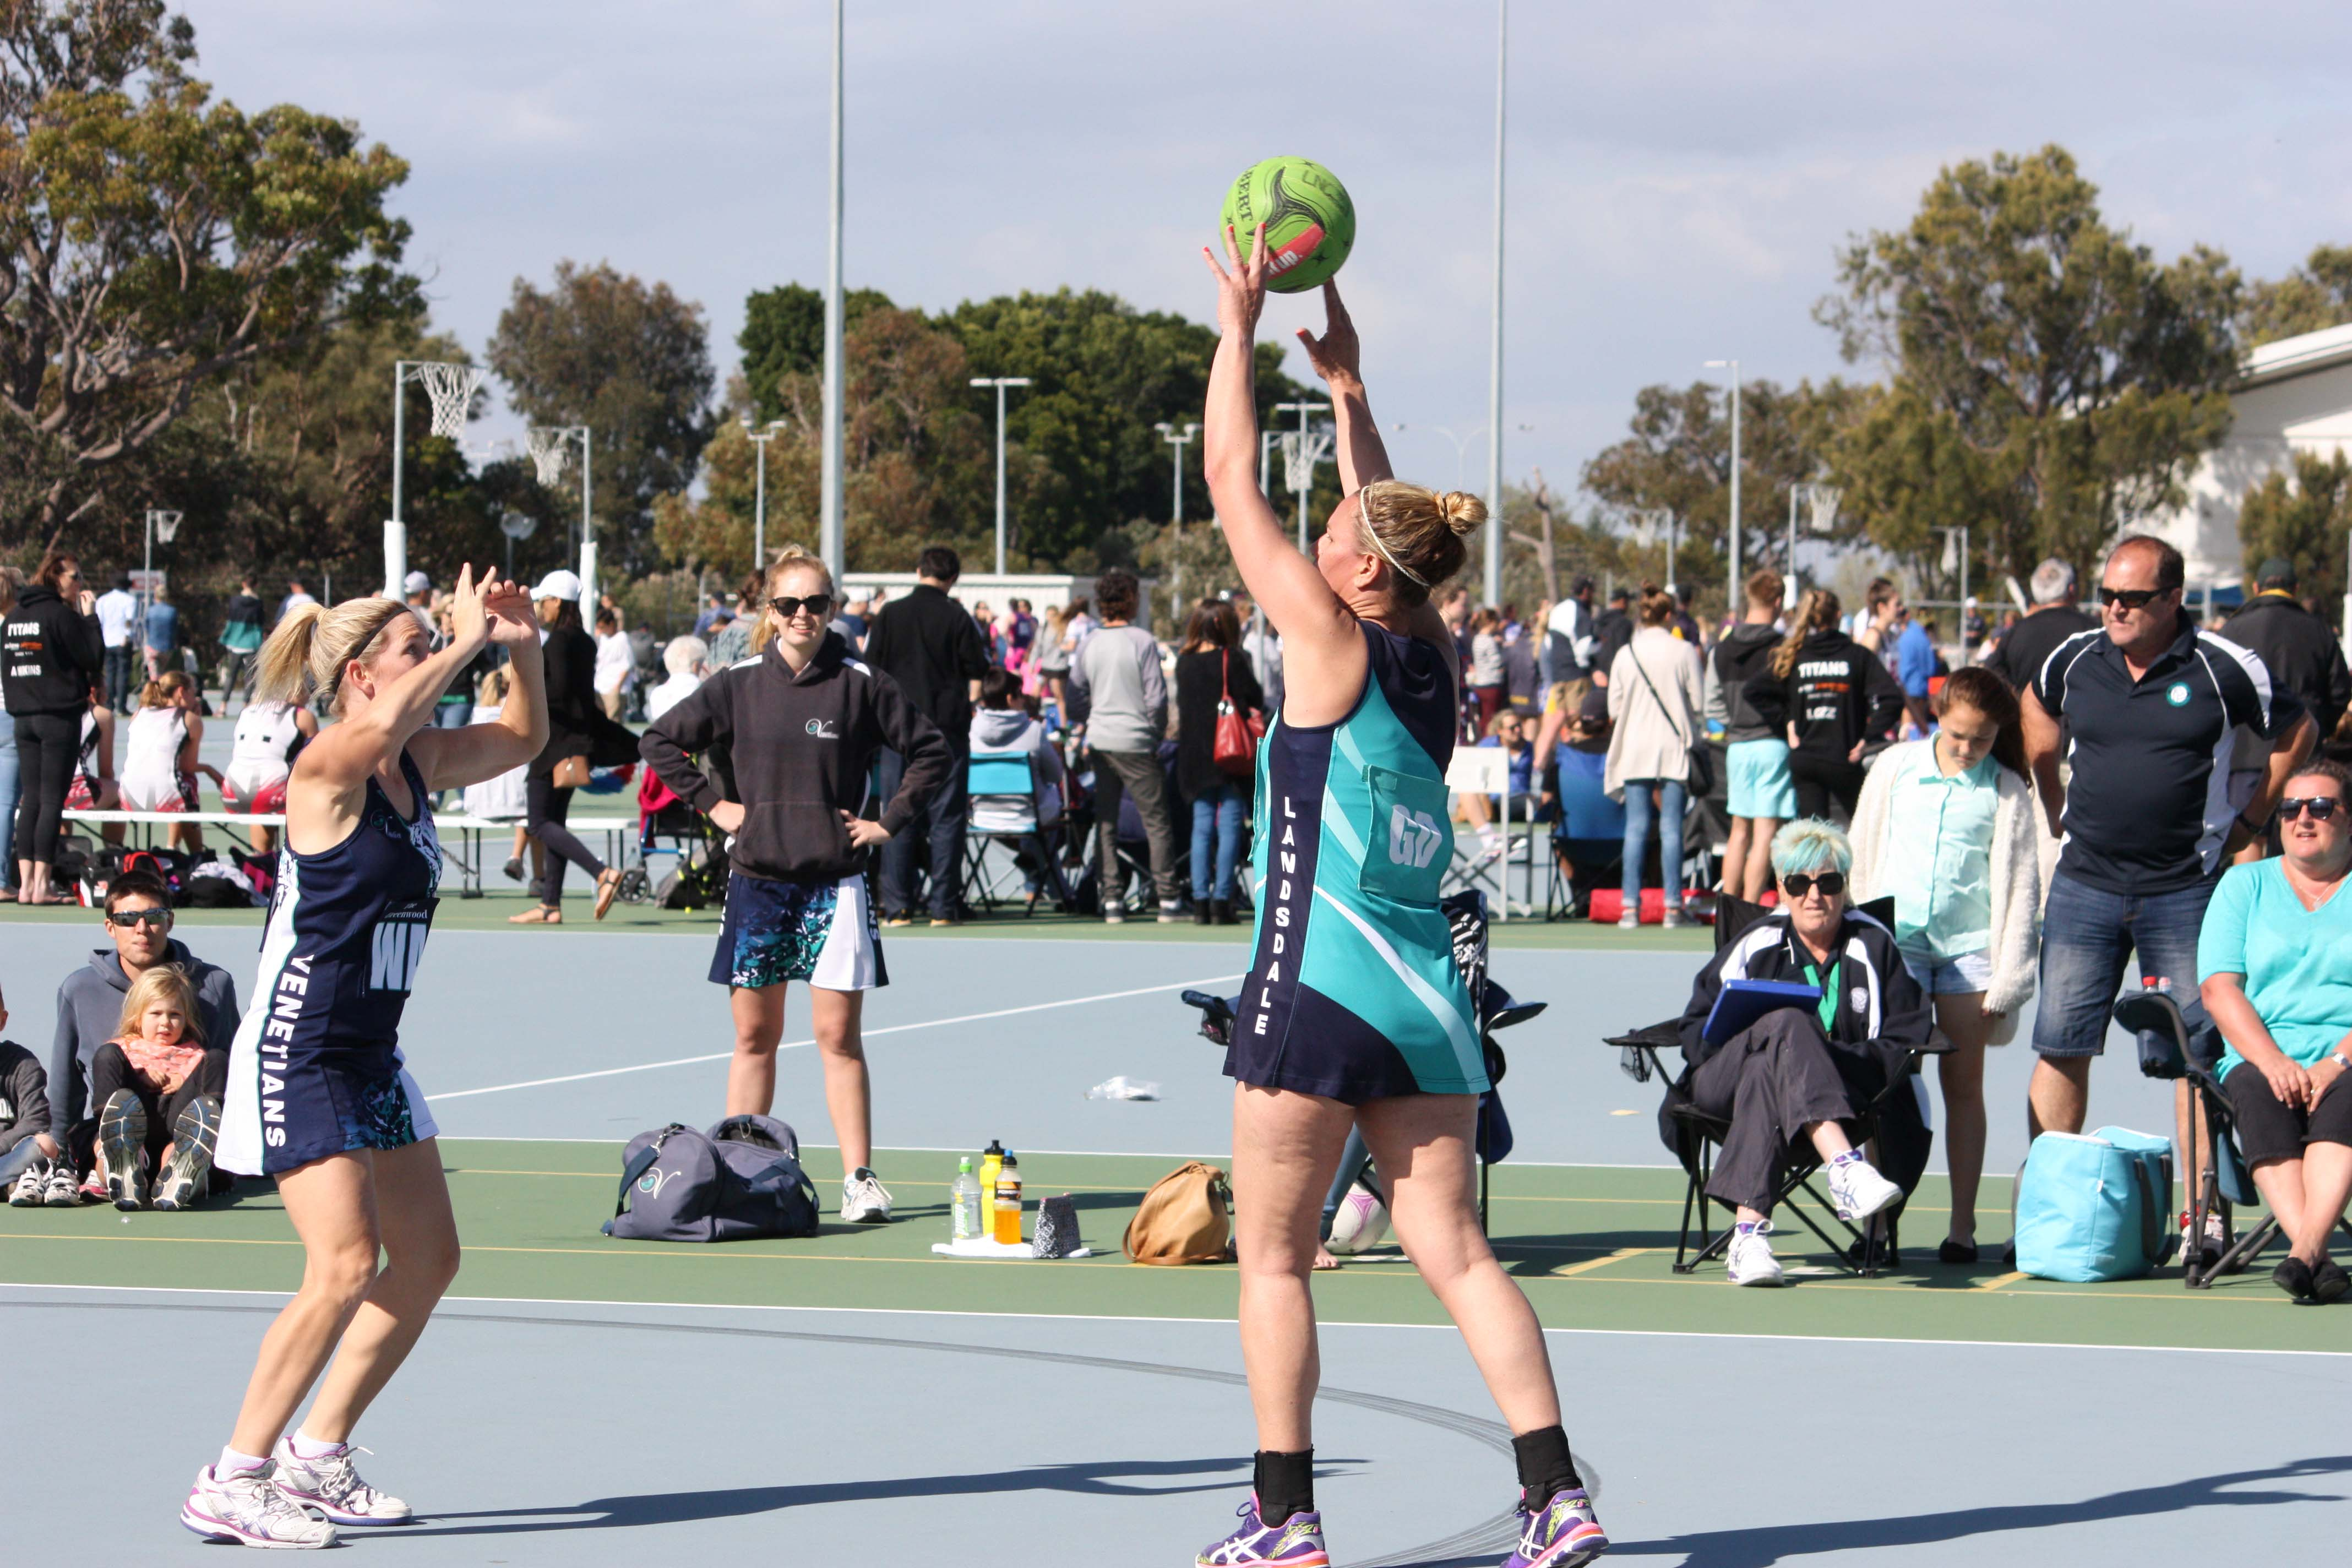 Landsdale Netball Club Open Players11